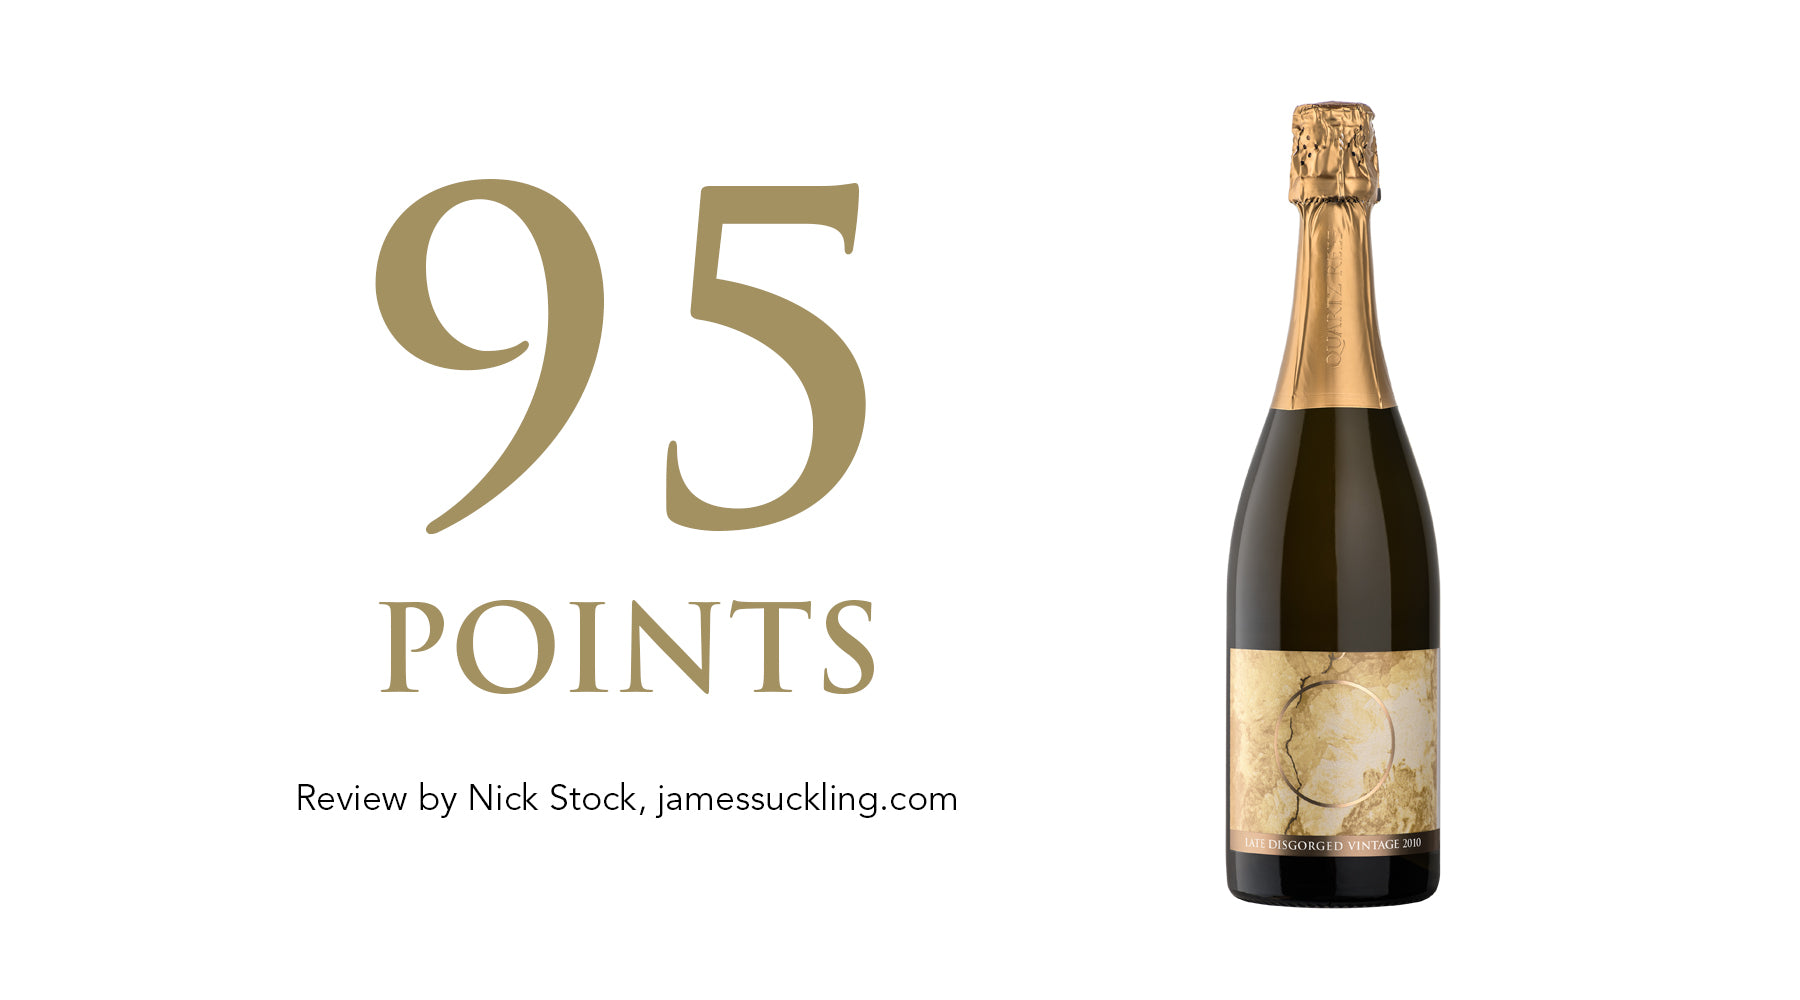 Late Disgorged Vintage 2010 - Awarded 95 Points